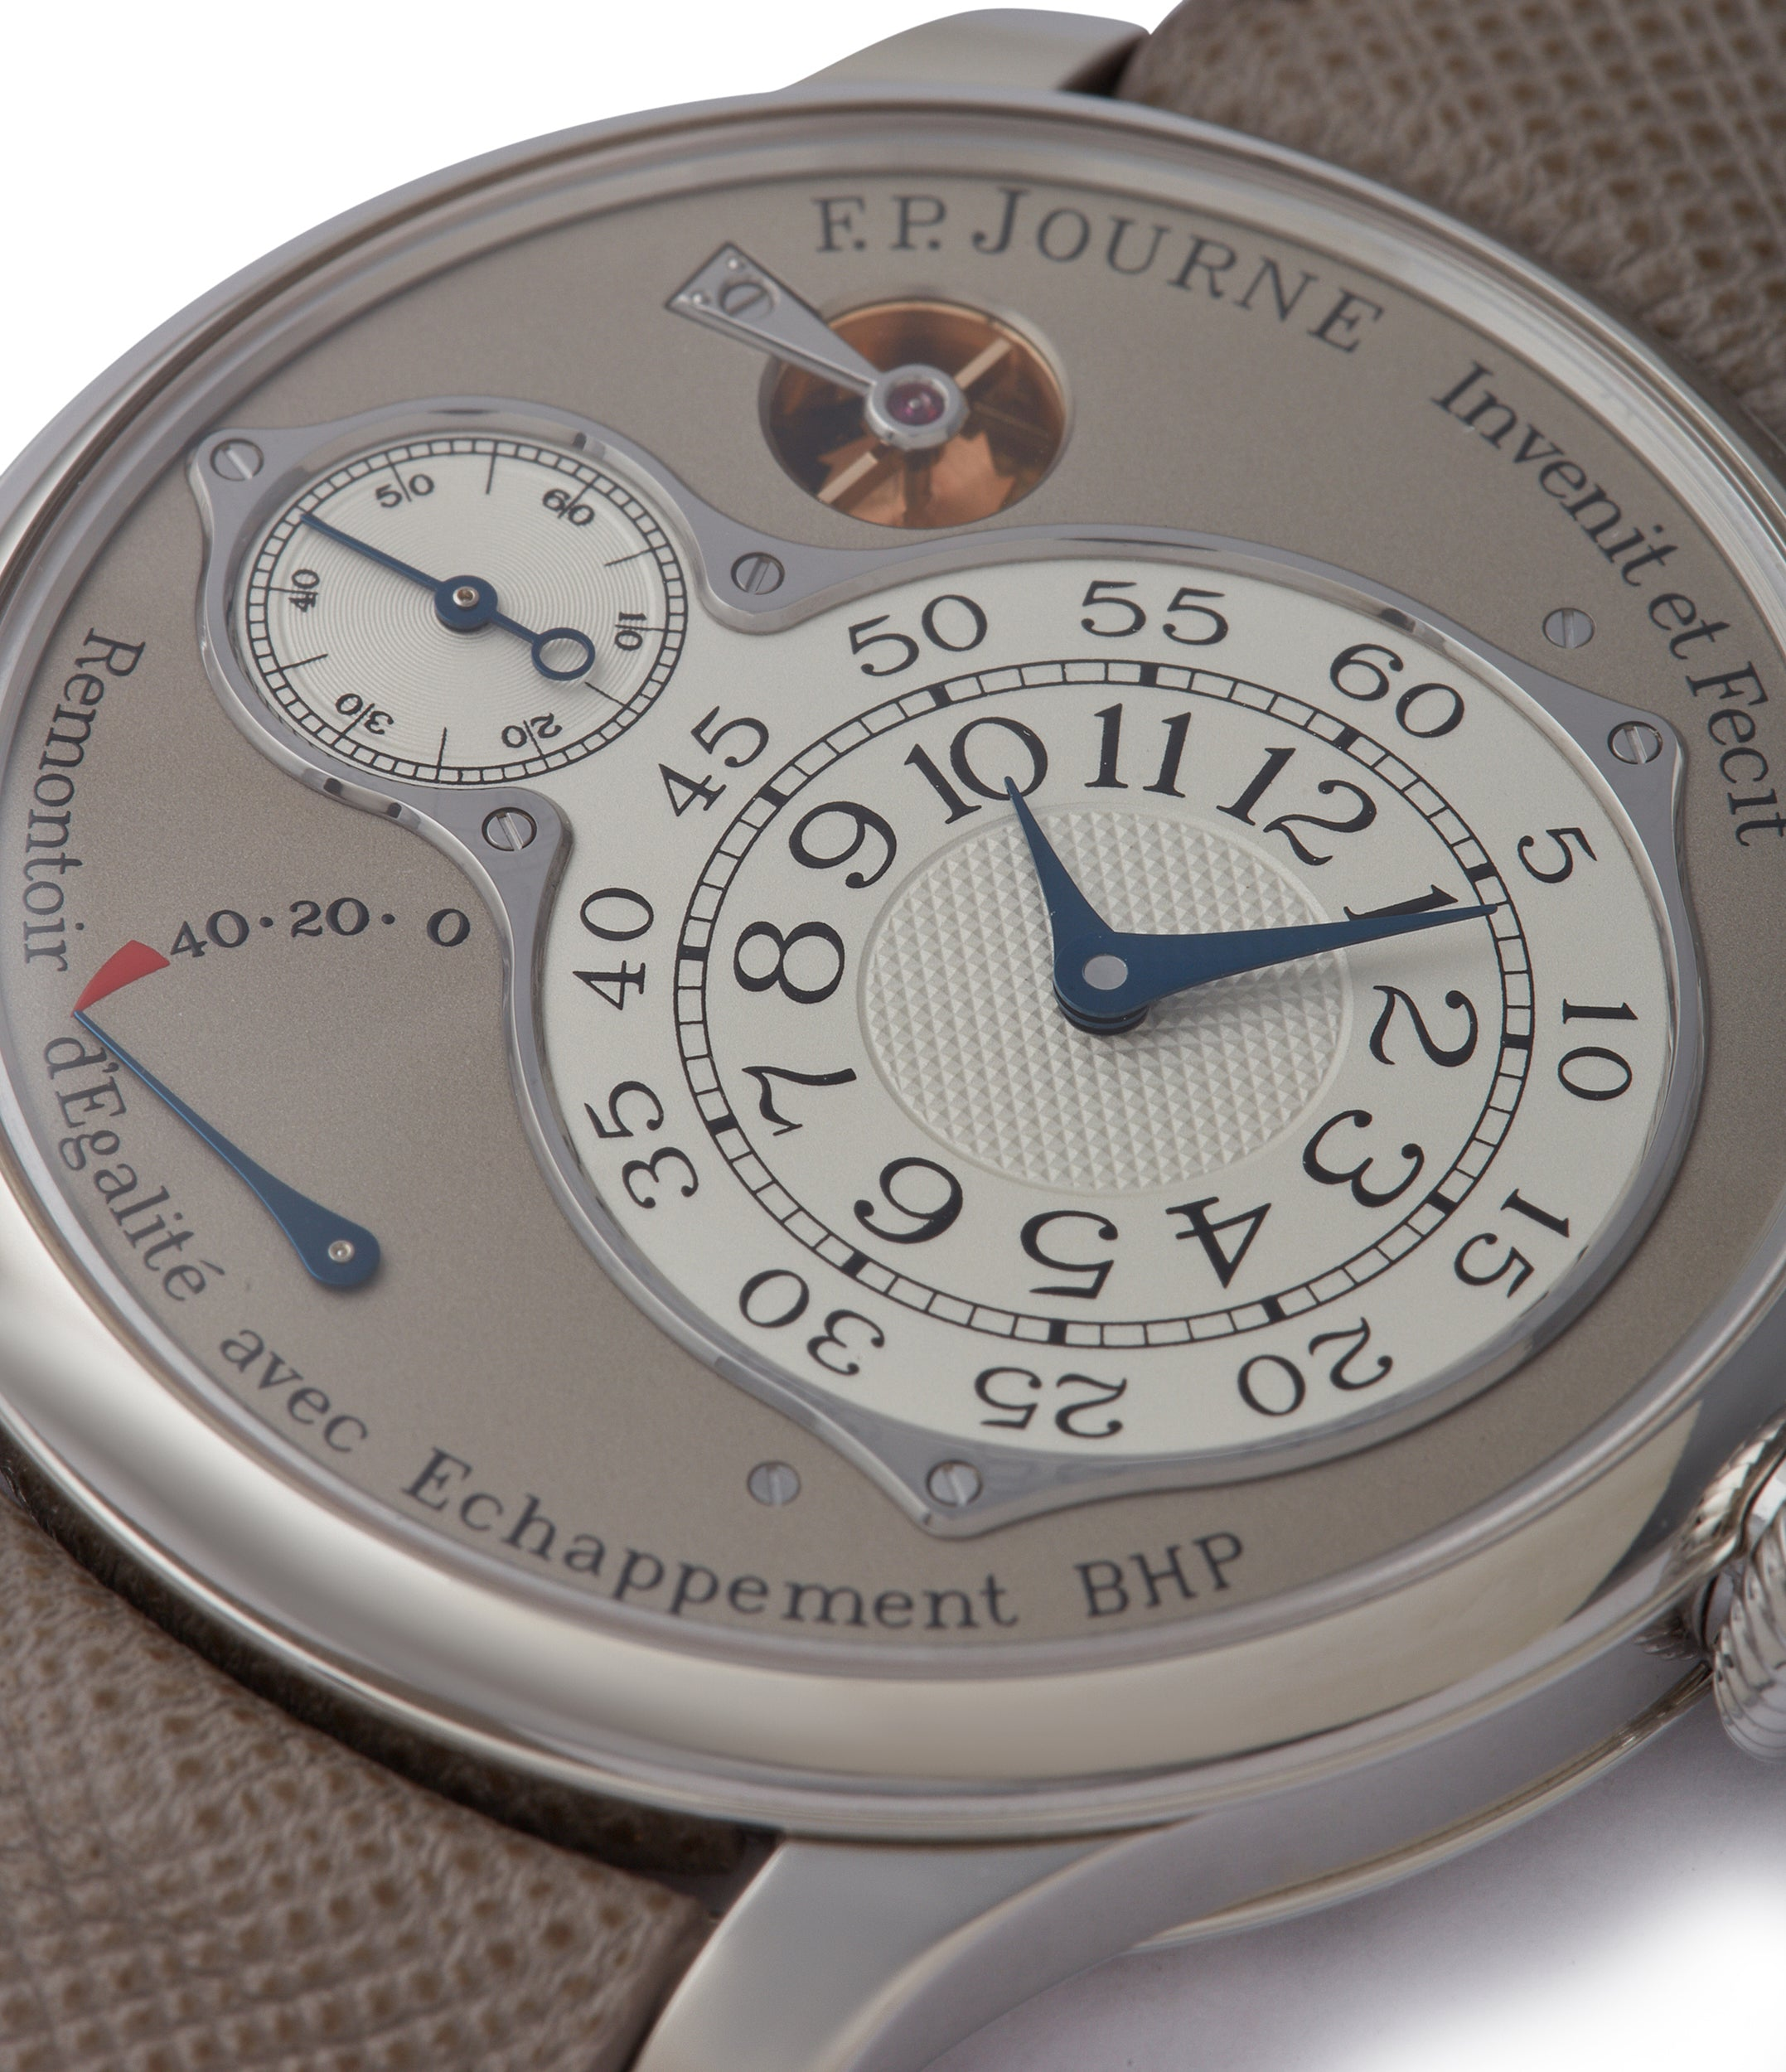 Remontoire d'Egalité F. P. Journe Chronometre Optimum 40mm platinum pre-owned dress watch for sale at A Collected Man London